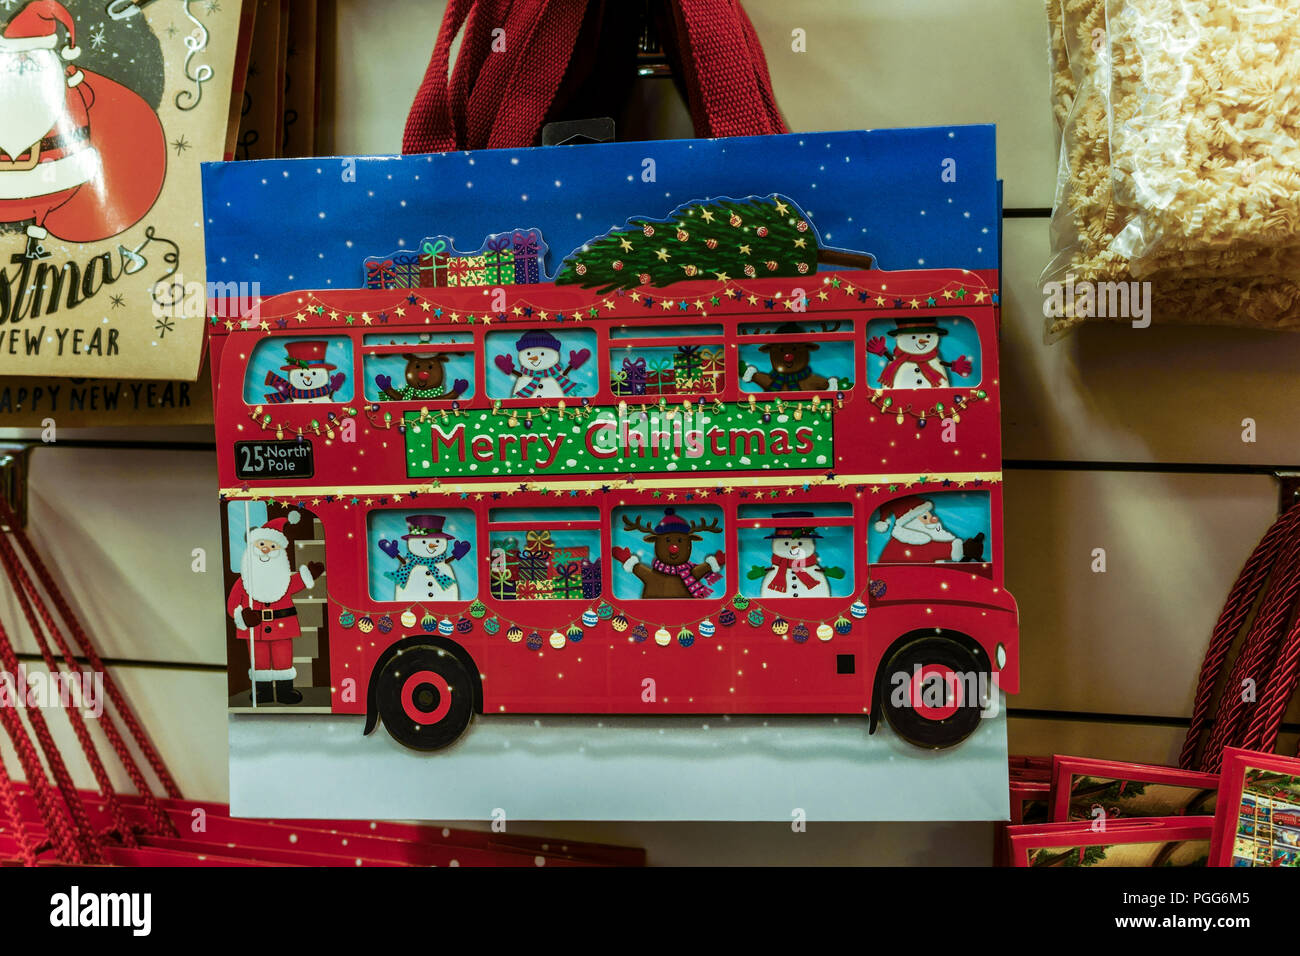 Merry Christmas red double decker bus drawn on a shopping bag on display in a shop. - Stock Image